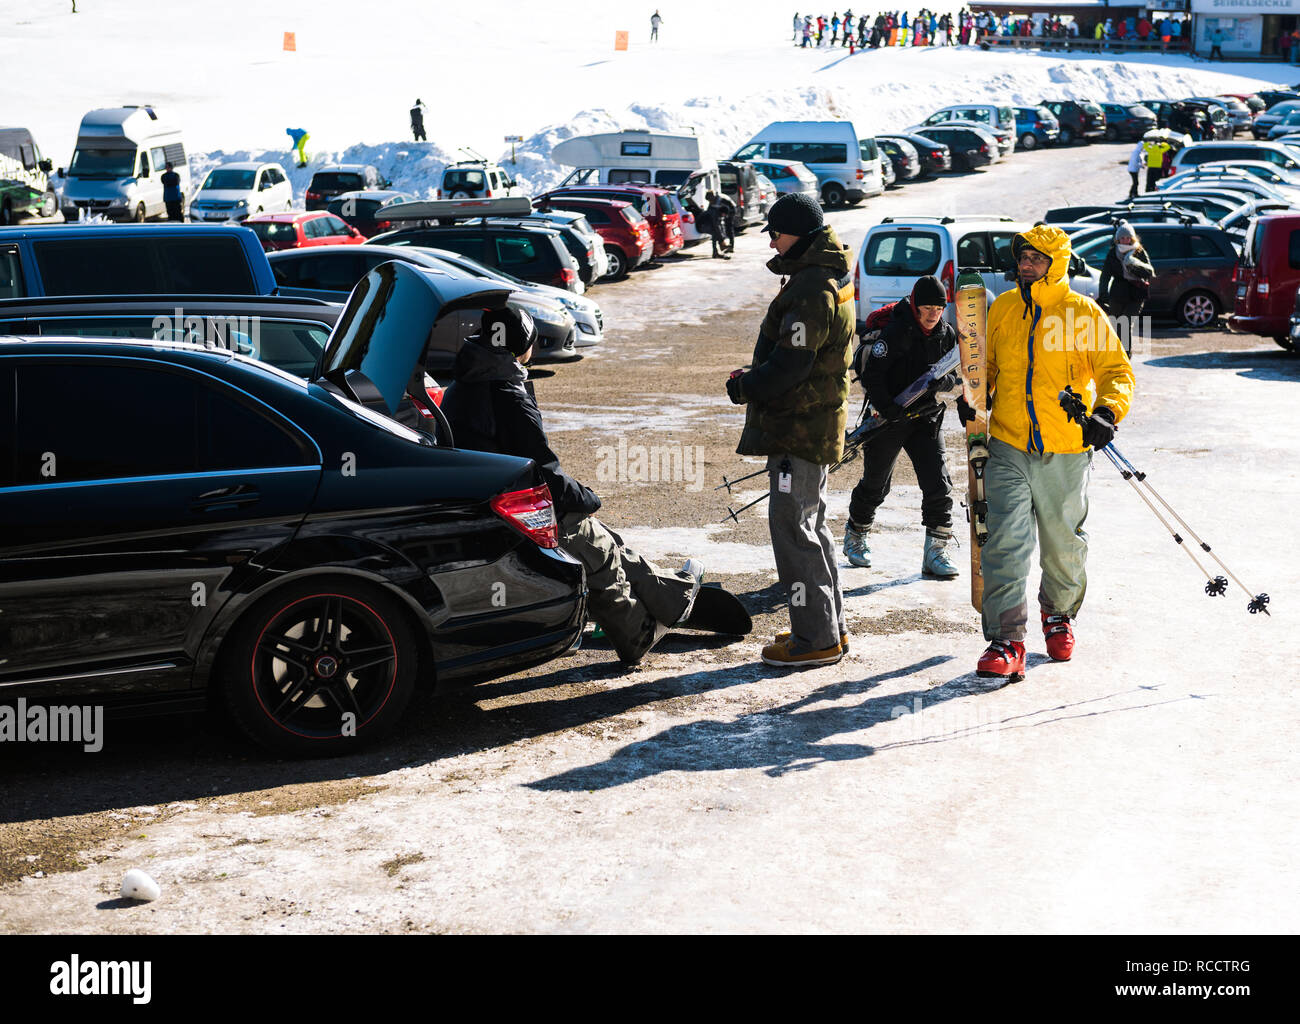 SEEBACH MUMMELSEE, FEB 25, 2018: Snowboarders resting after game seated on a Mercedes-Benz fast car parked in large parking Stock Photo